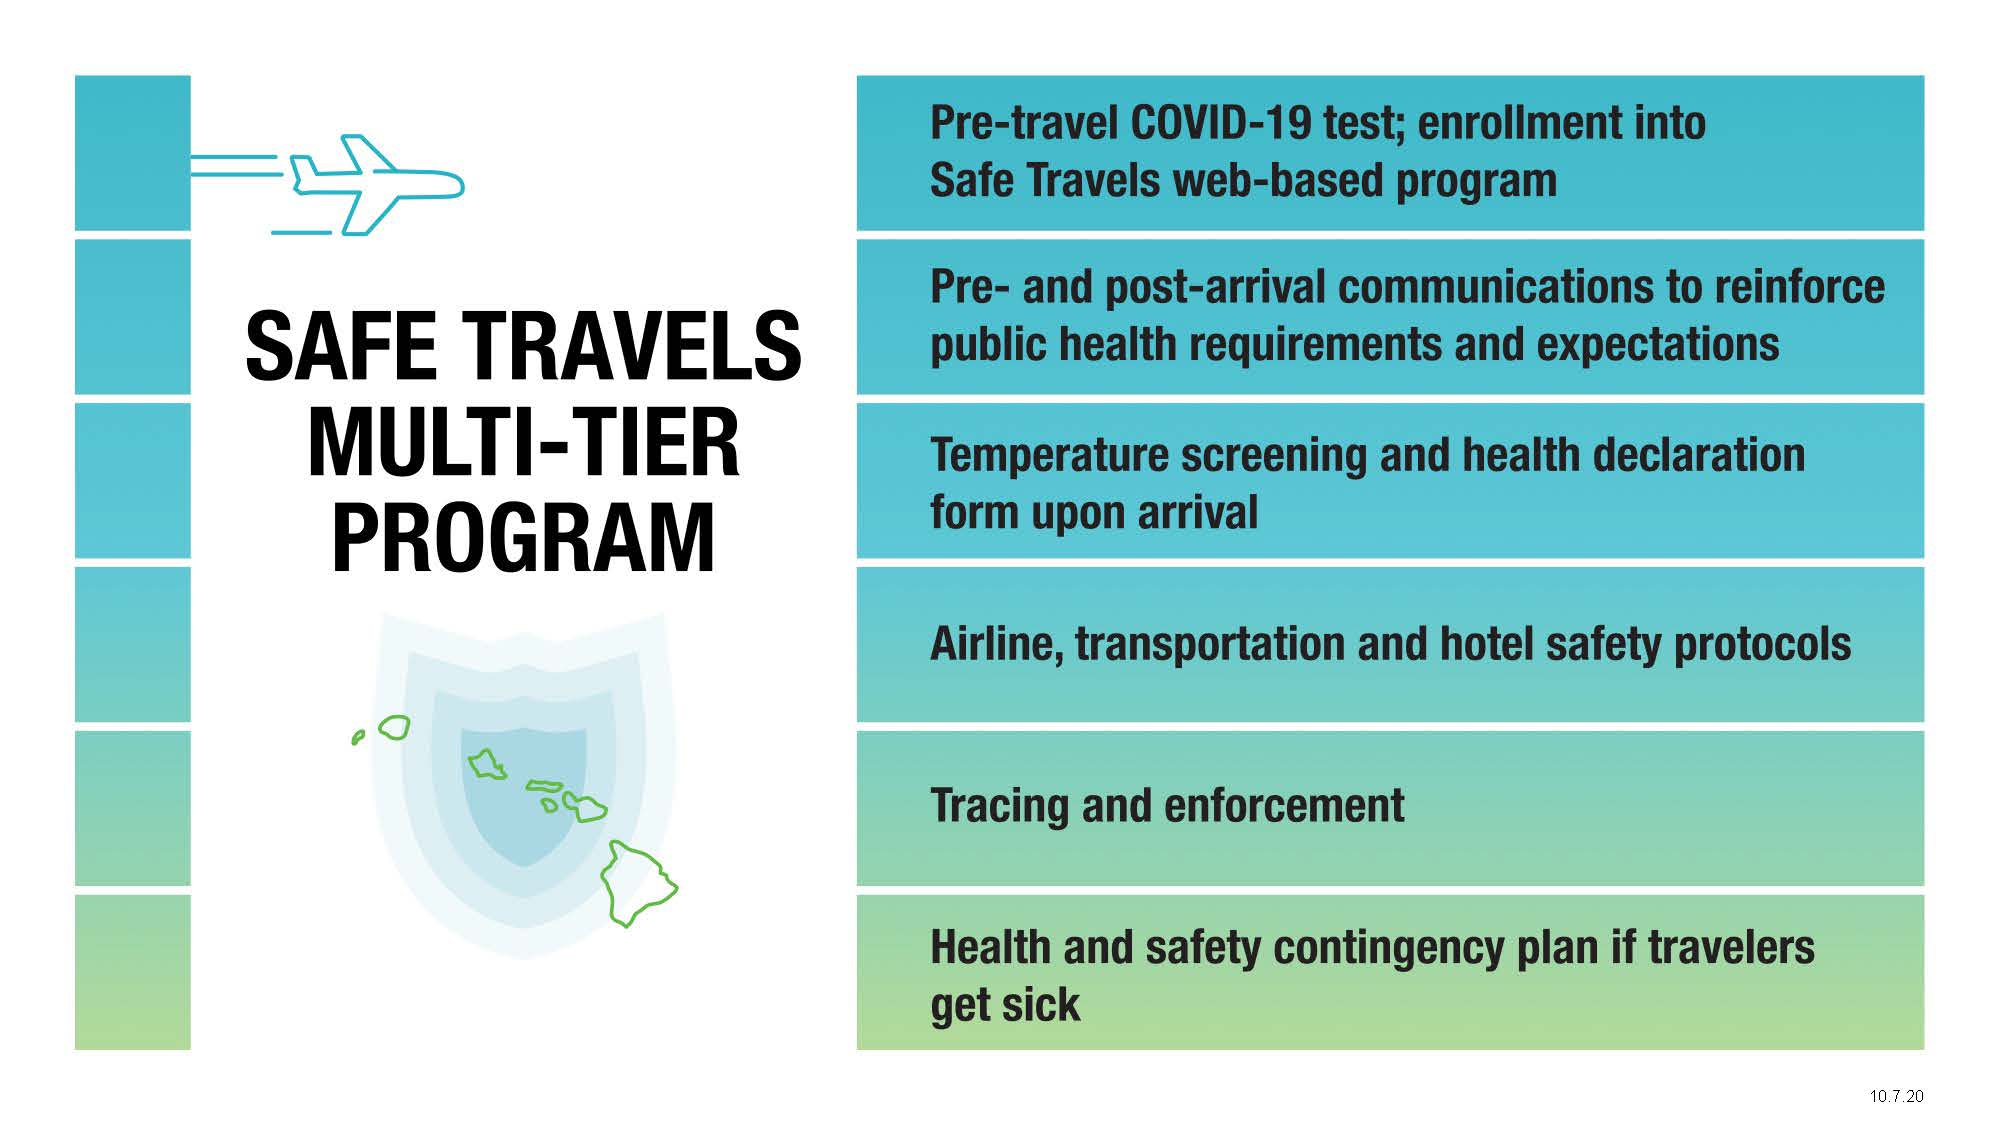 David Y. Ige | Governor's Office – News Release – Gov. Ige announces  trusted testing and travel partners for COVID-19 pre-travel testing program  that starts October 15